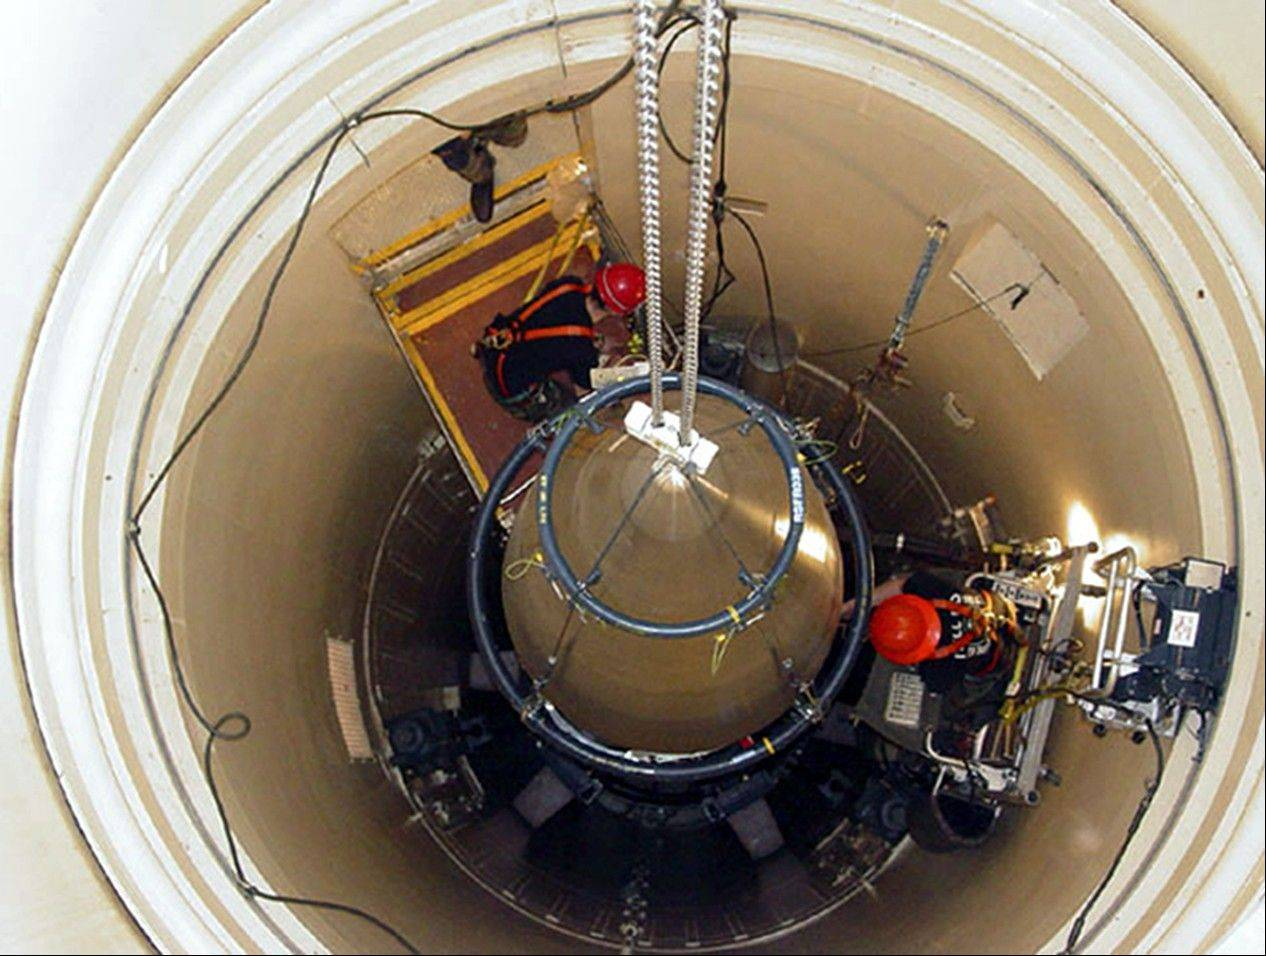 A Malmstrom Air Force Base missile maintenance team removes the upper section of an ICBM at a Montana missile site. The hundreds of nuclear missiles that have stood war-ready for decades in underground silos along remote stretches of America, silent and unseen, packed with almost unimaginable destructive power, are a force in distress, if not in decline.